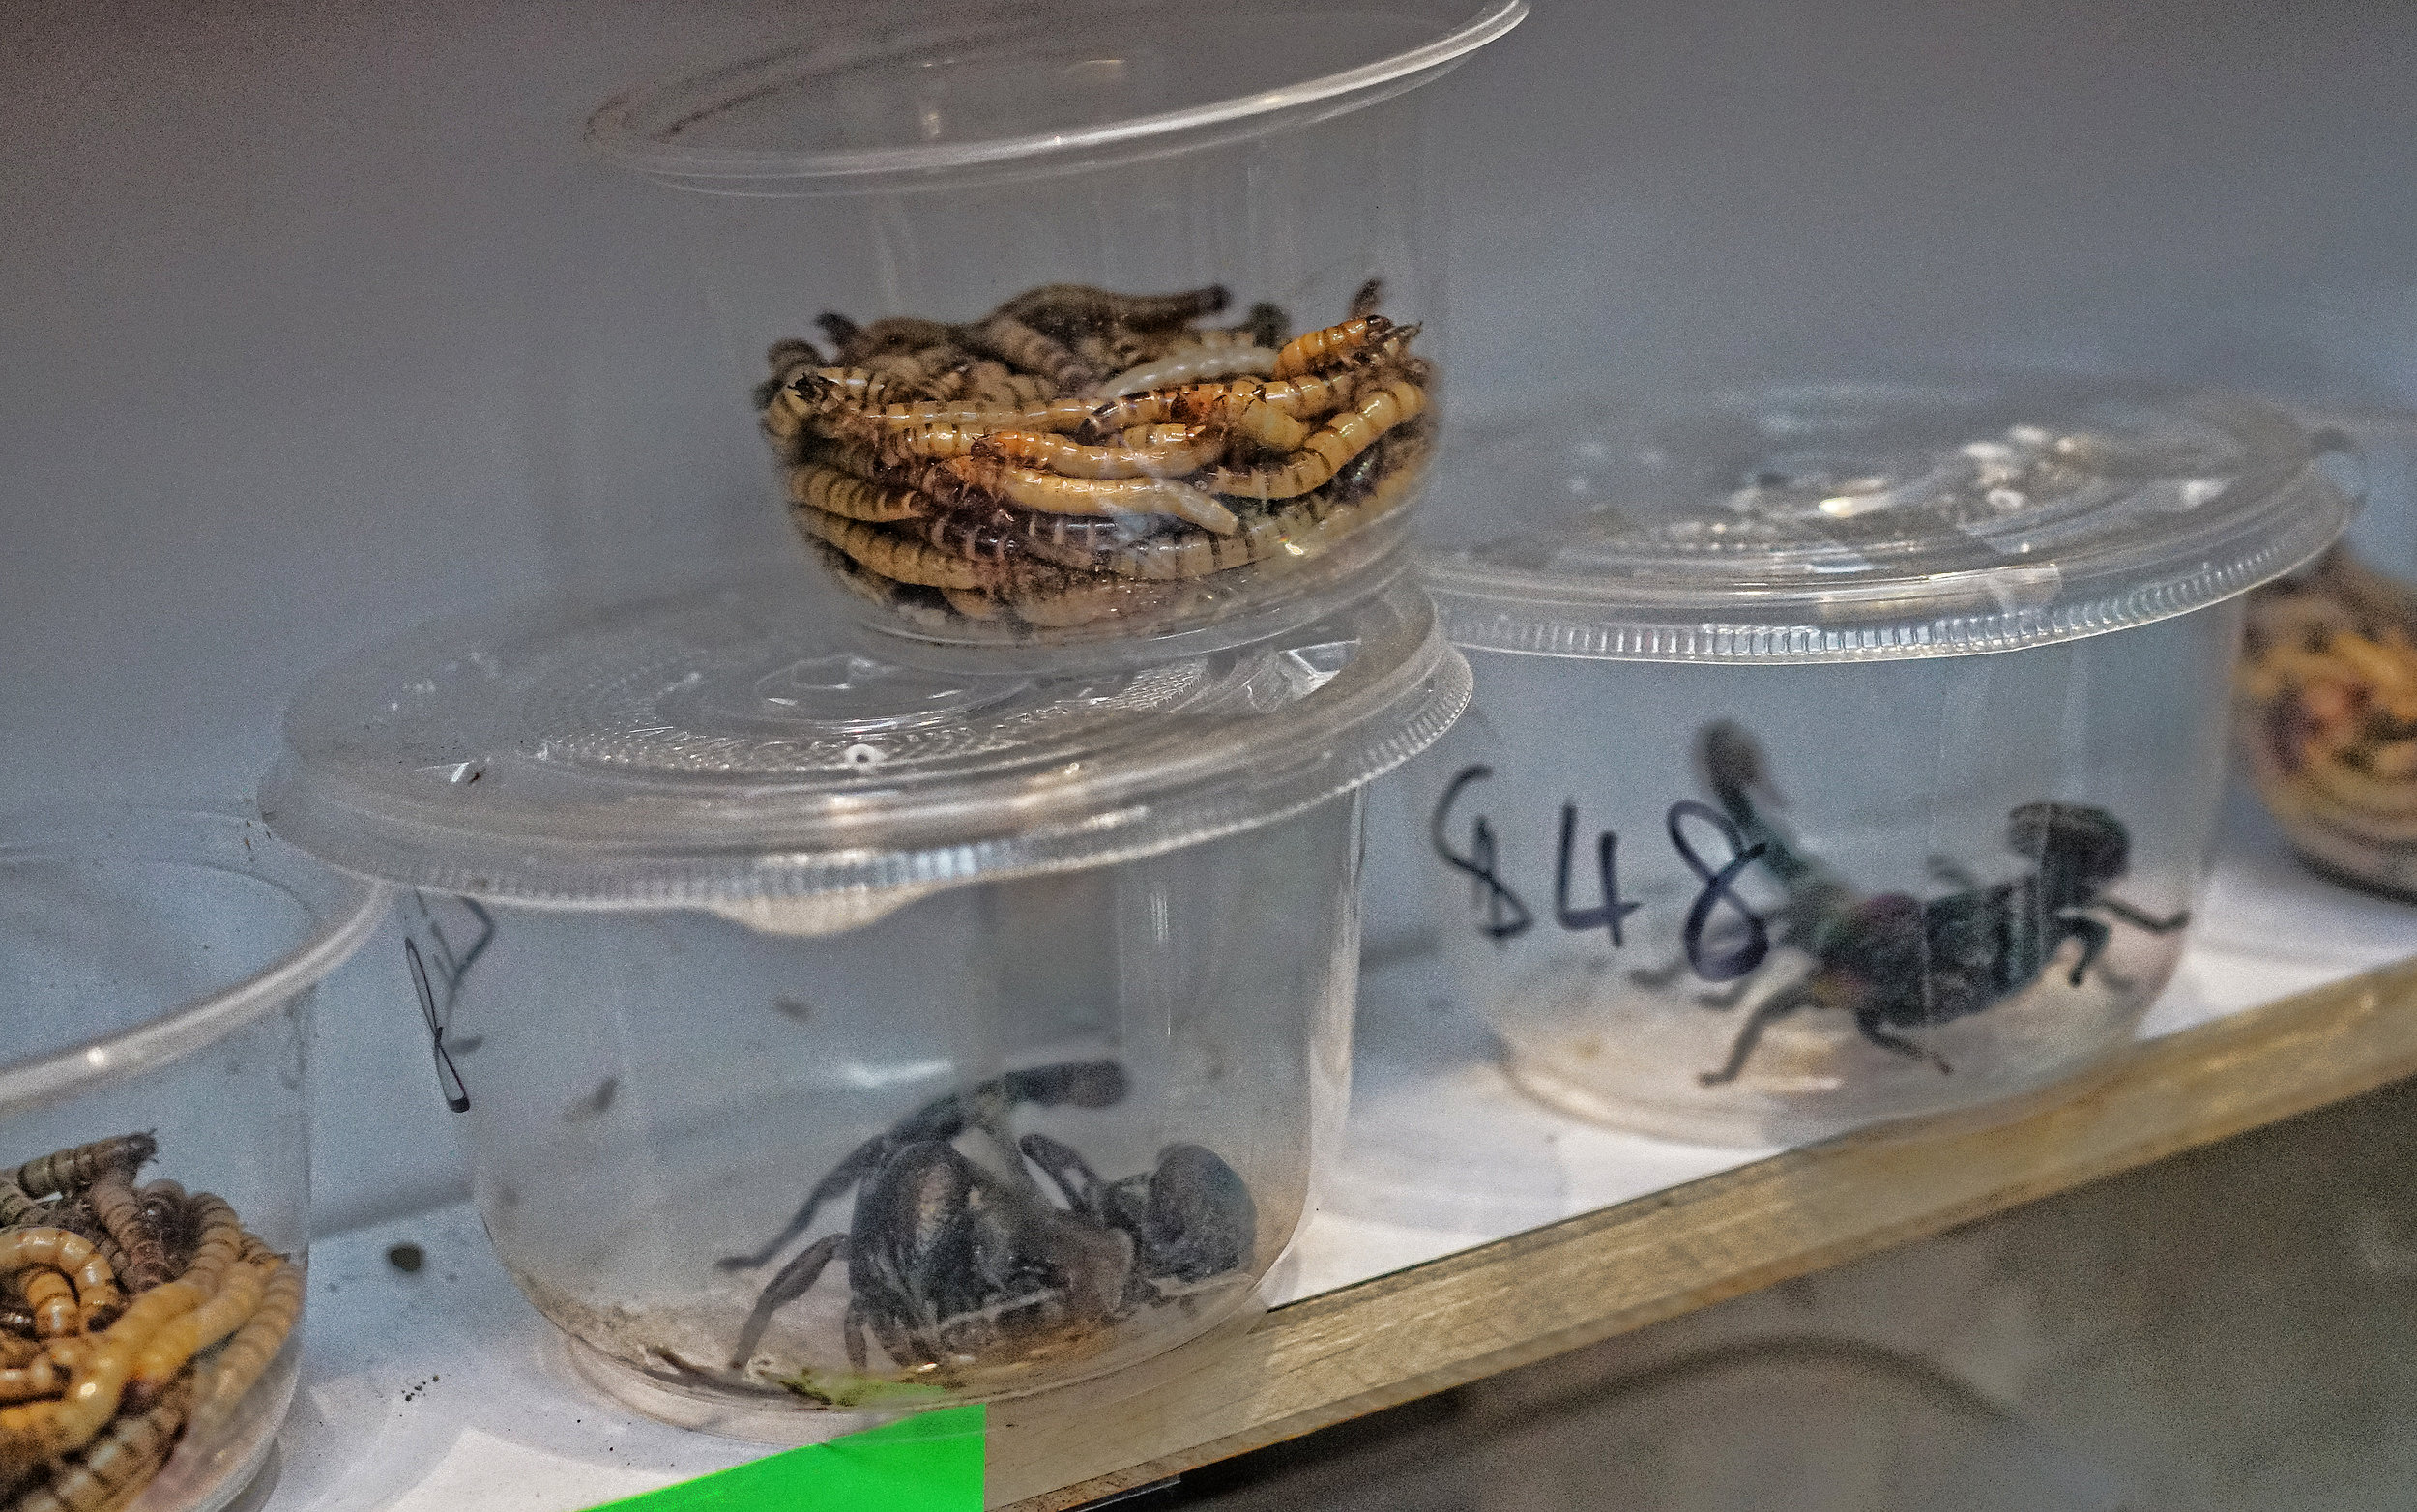 Over the years the Goldfish Market has morphed into more of a Pet Market and there are all sorts of weird things on display like these scary scorpions!! -